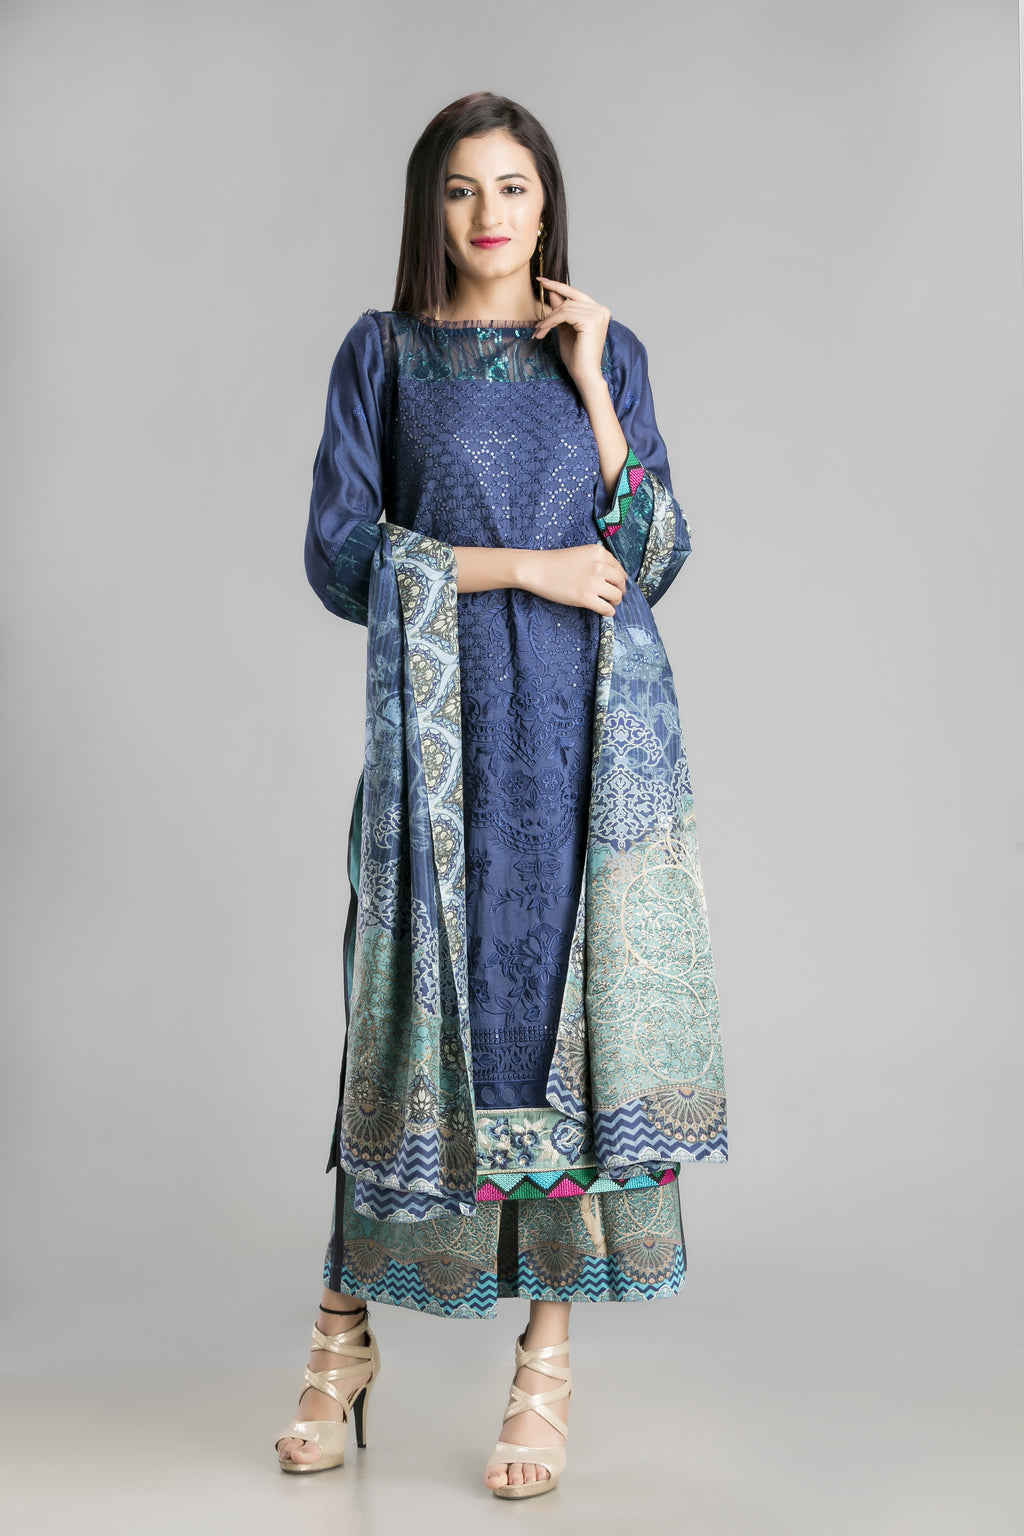 Mediterranean Mood Palazzo Suit for the Ethereal Look